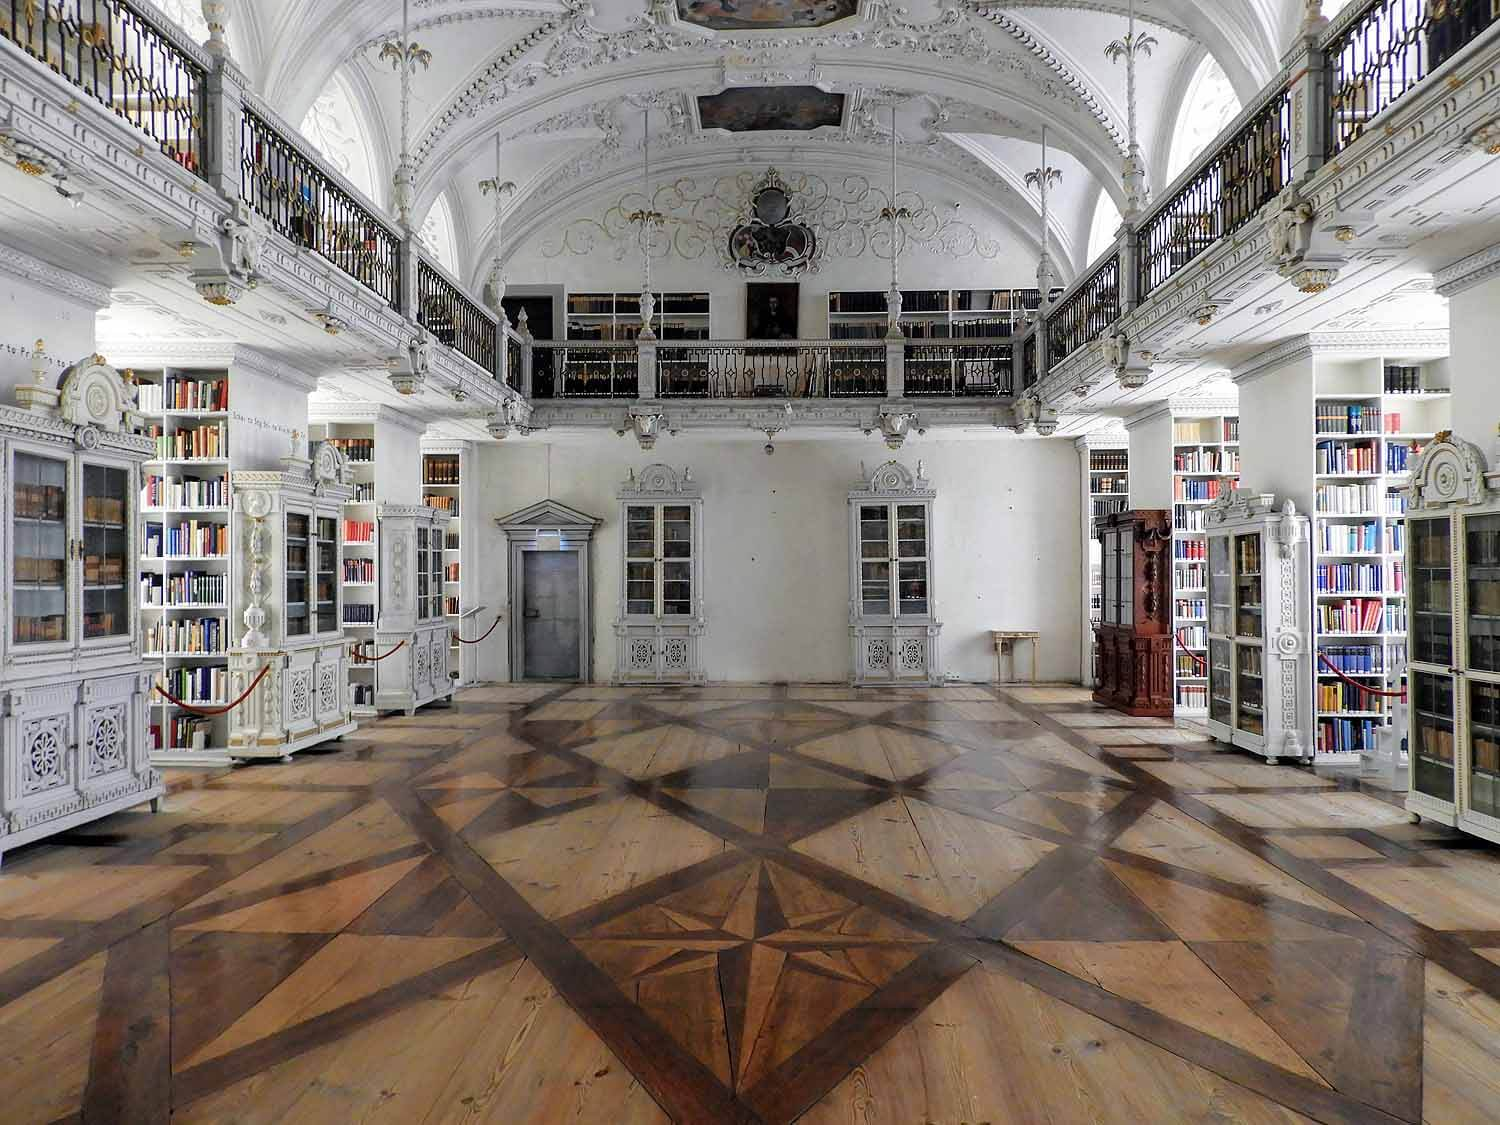 germany-salem-monastery-library.jpg